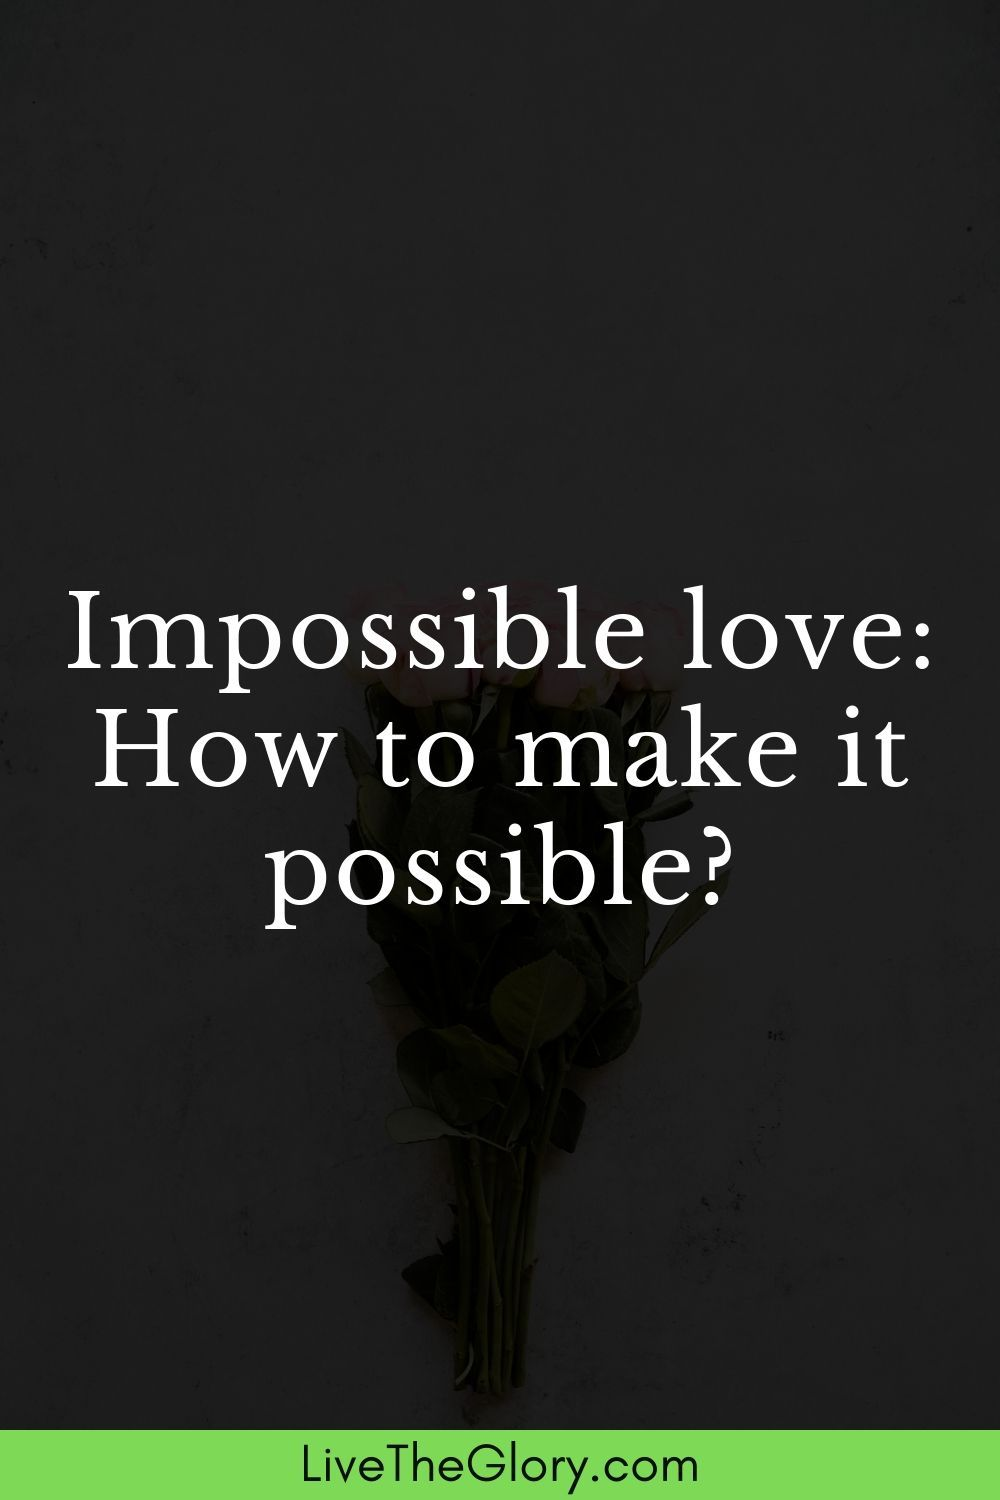 Impossible Love How To Make It Possible In 2020 Impossible Love Quotes Quotes About Strength Relationship Advice